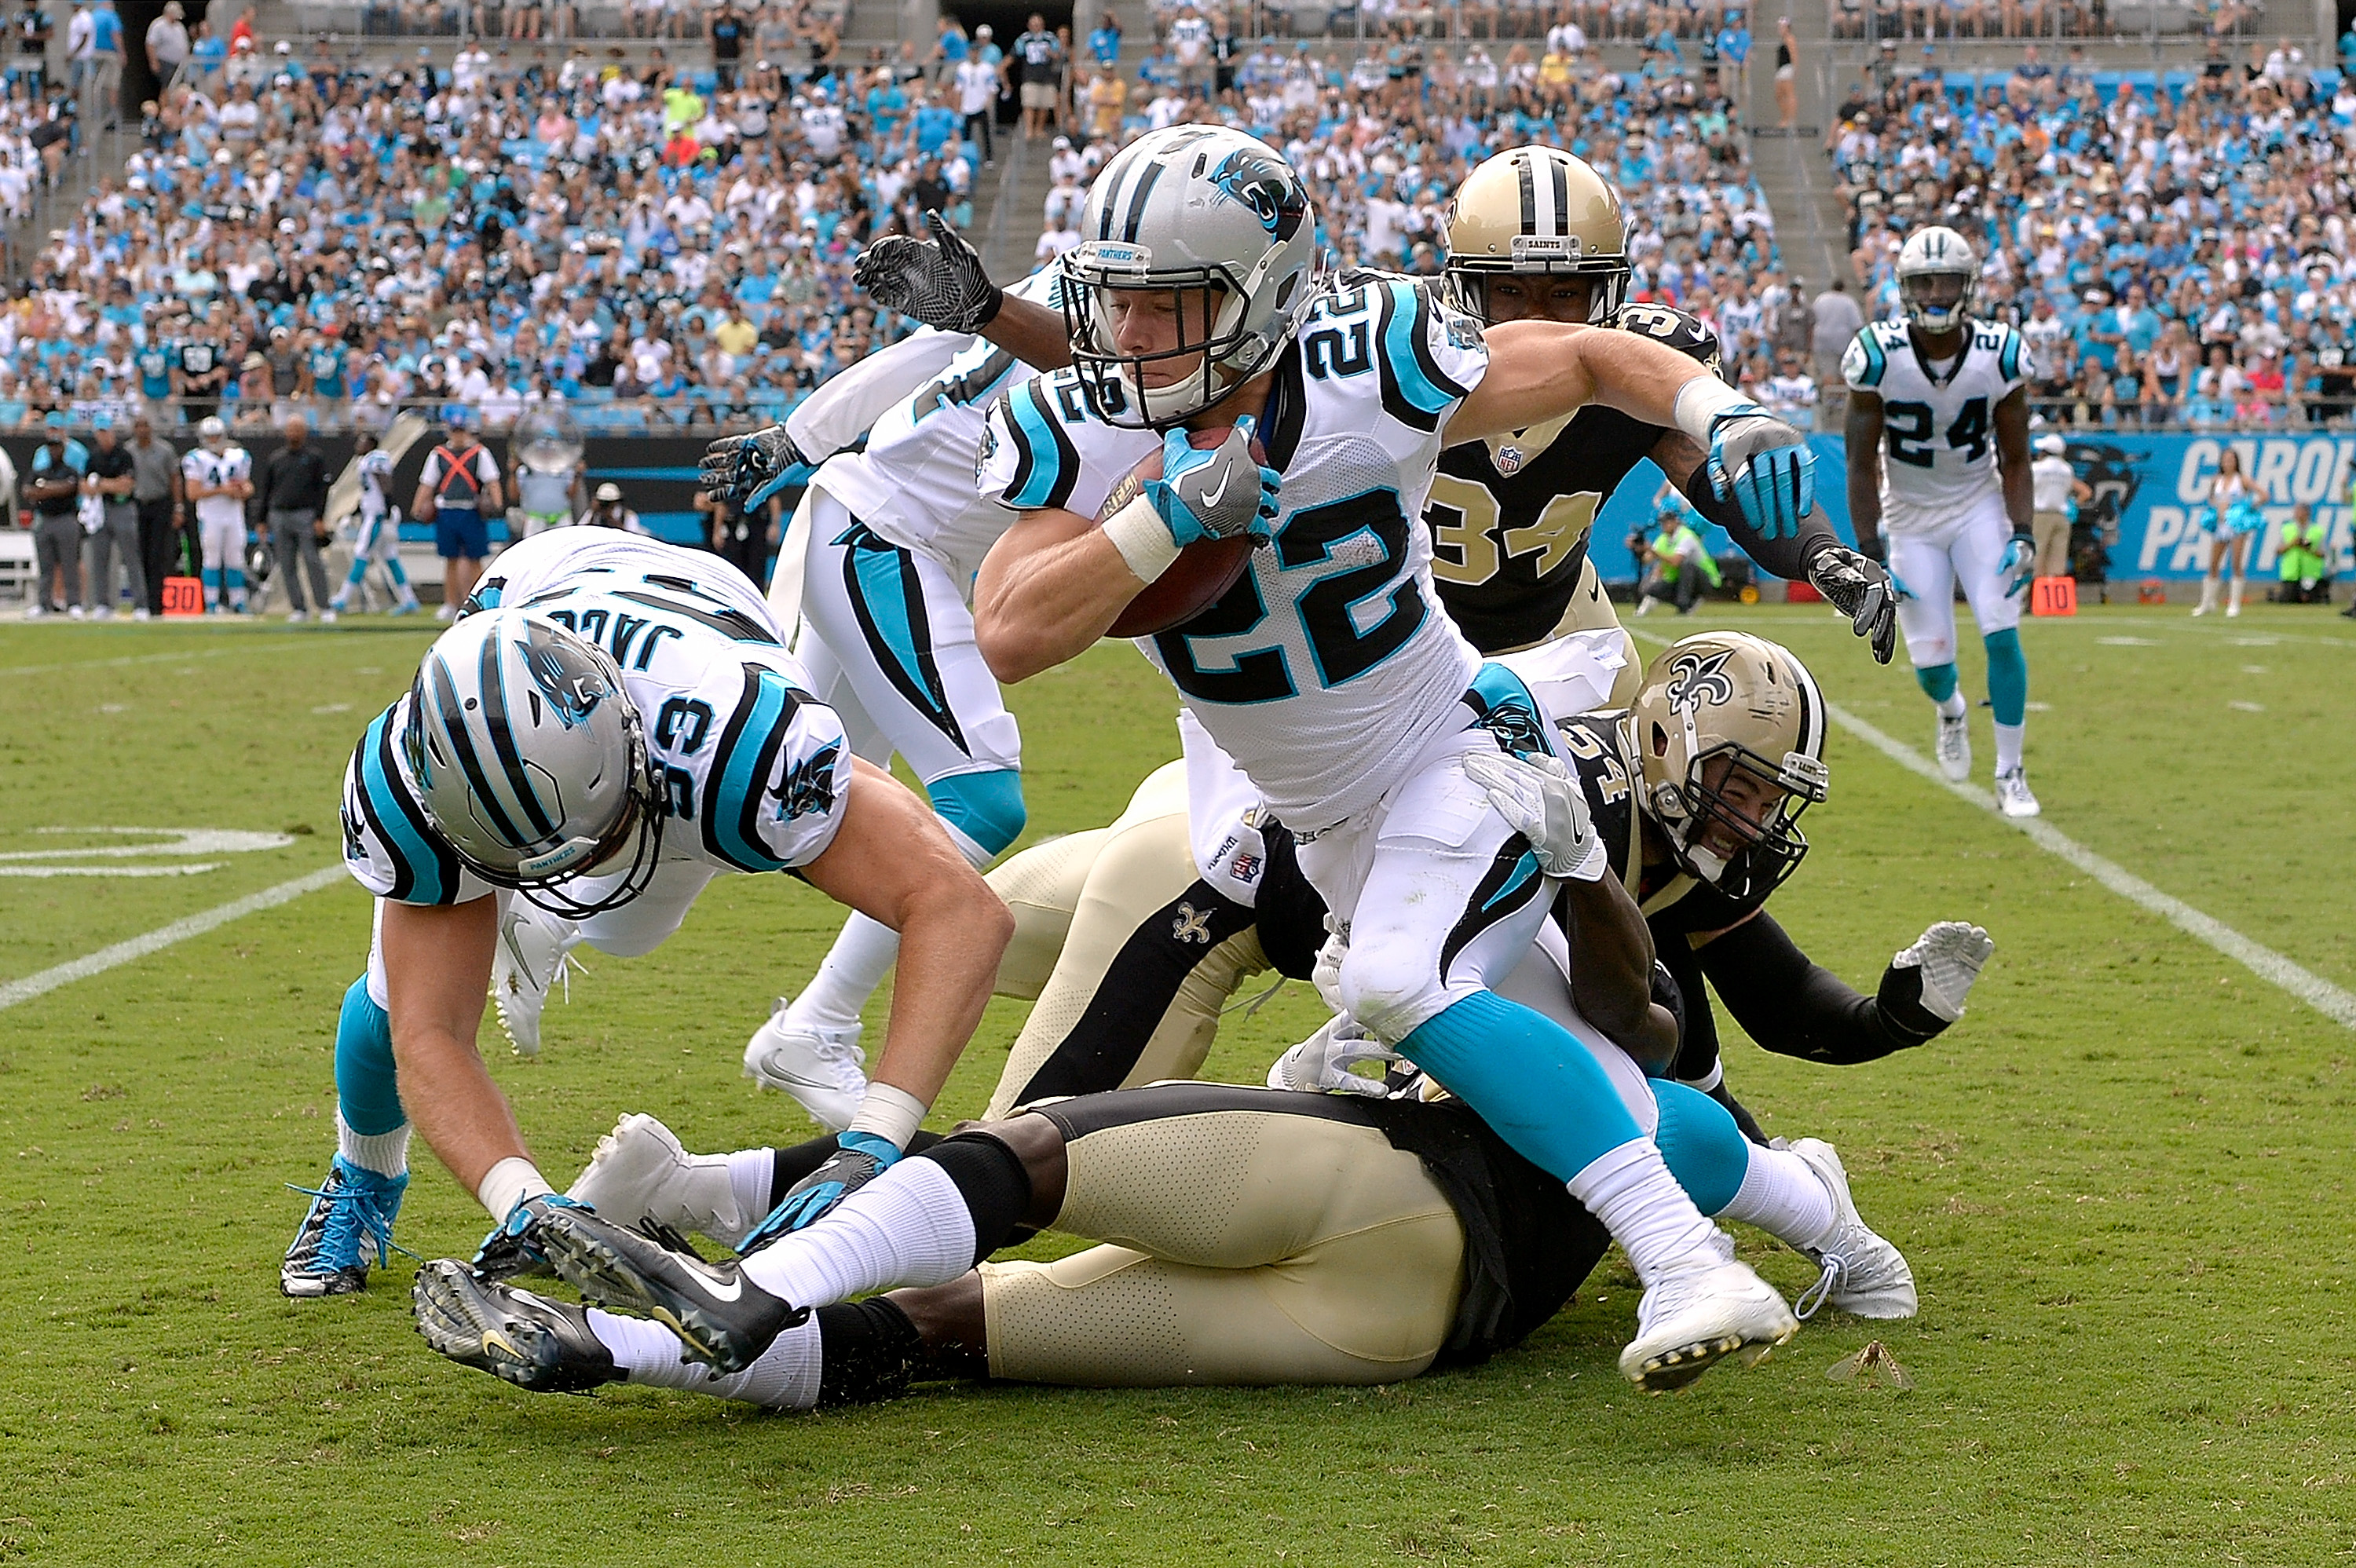 Panthers Wild Card Playoffs preview and predictions